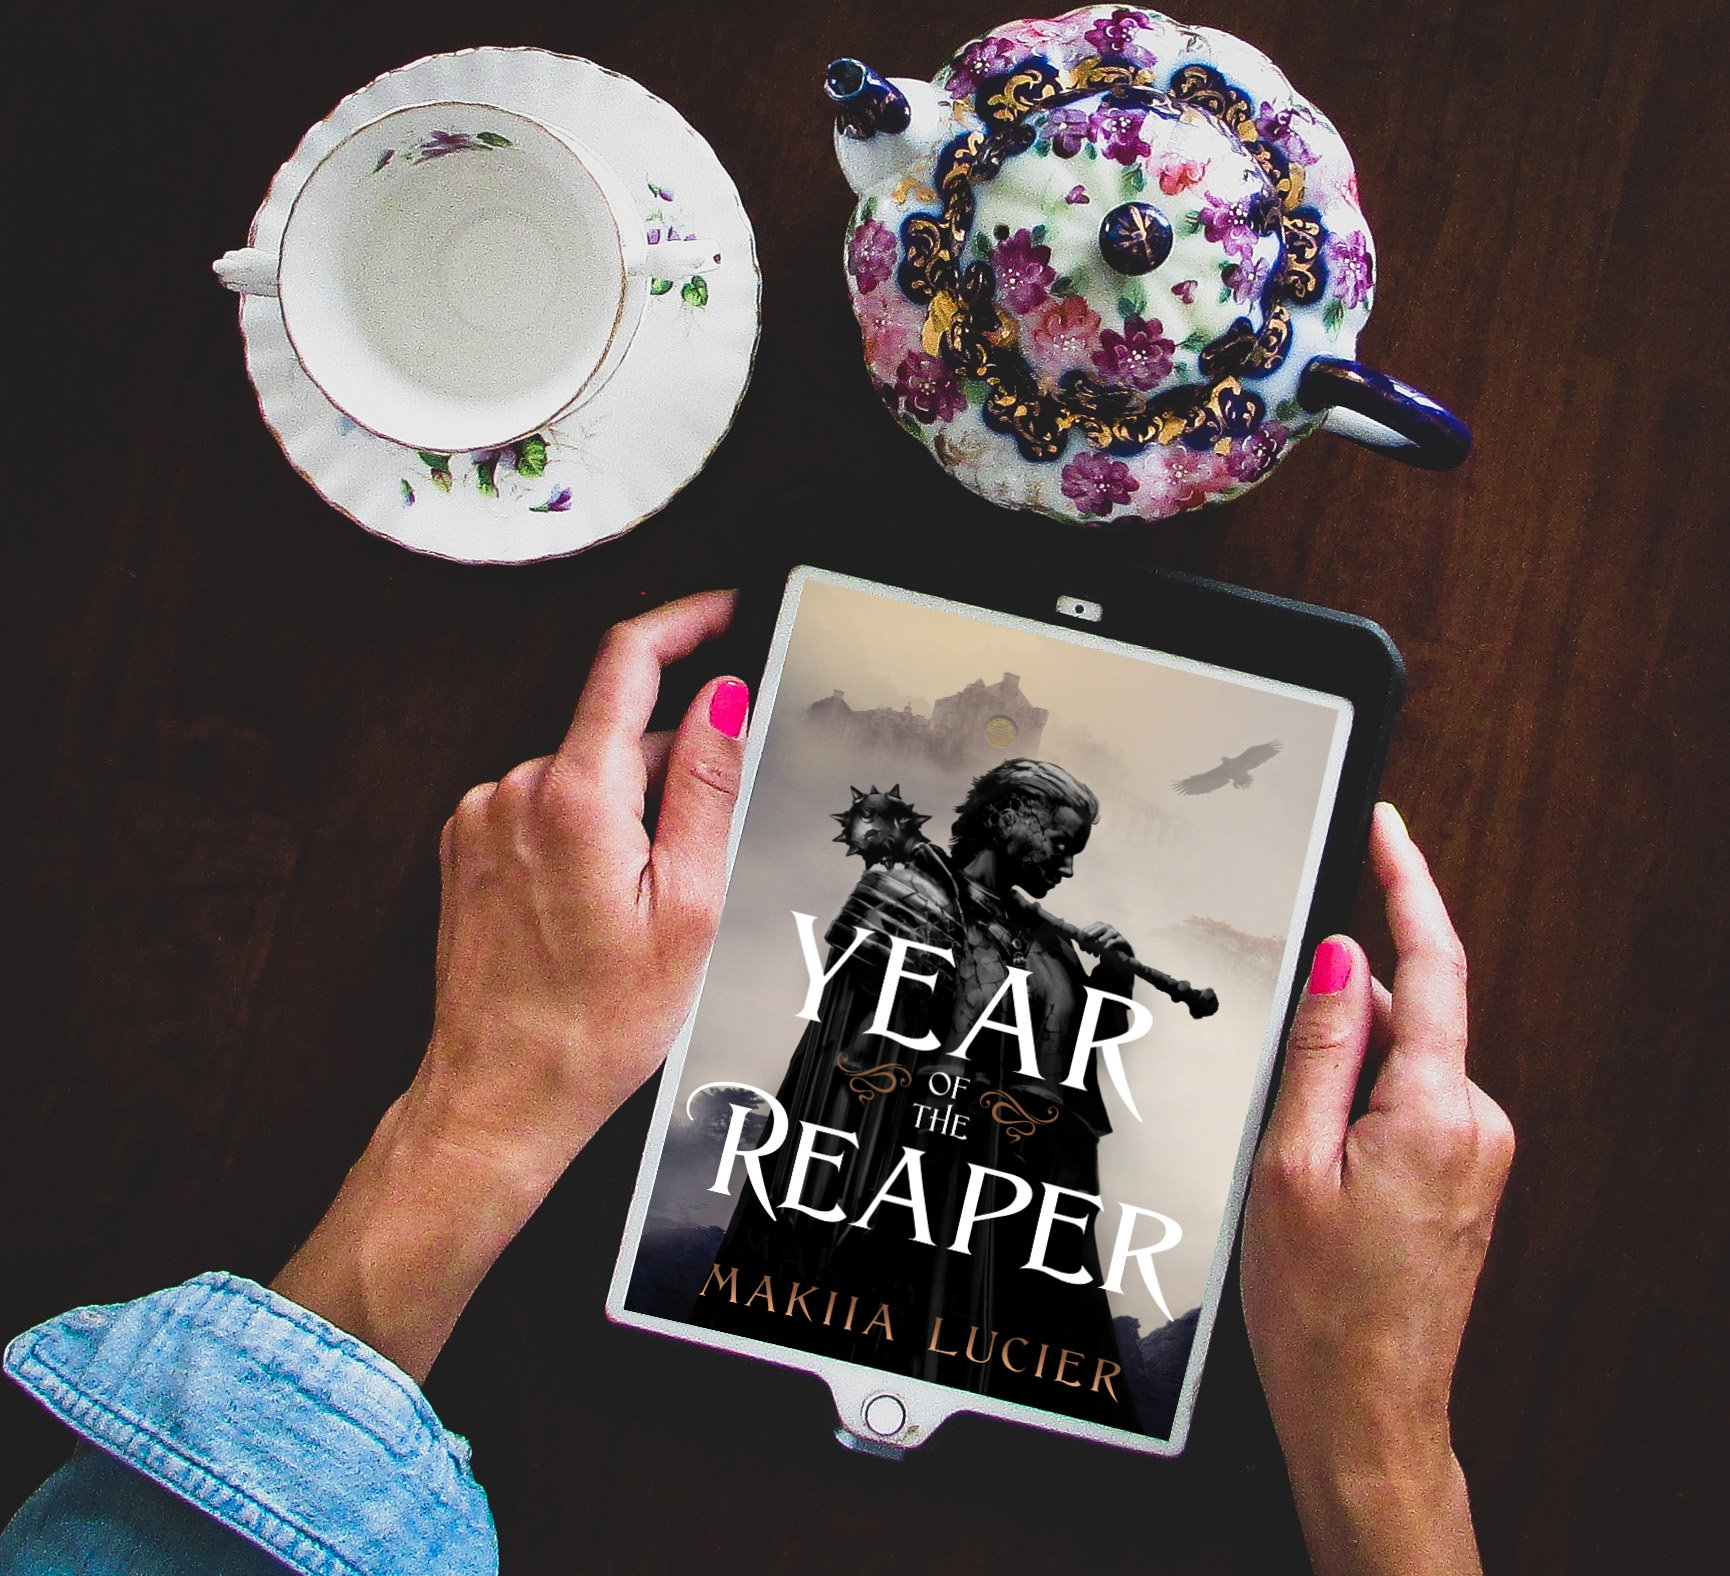 Read more about the article Year of the Reaper by Makiia Lucier